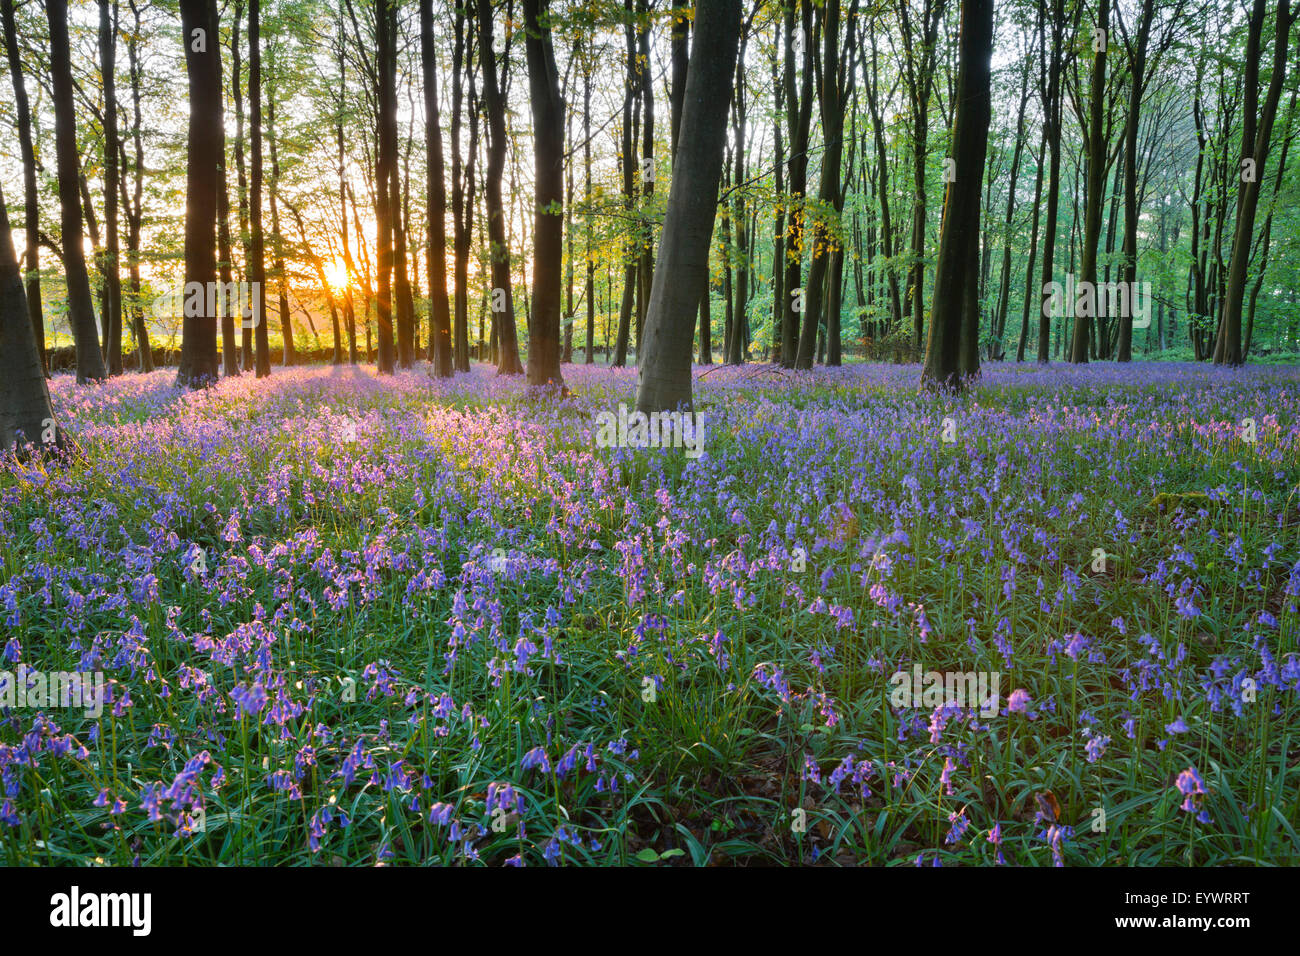 Bluebell wood, Stow-on-the-Wold, Cotswolds, Gloucestershire, Angleterre, Royaume-Uni, Europe Photo Stock